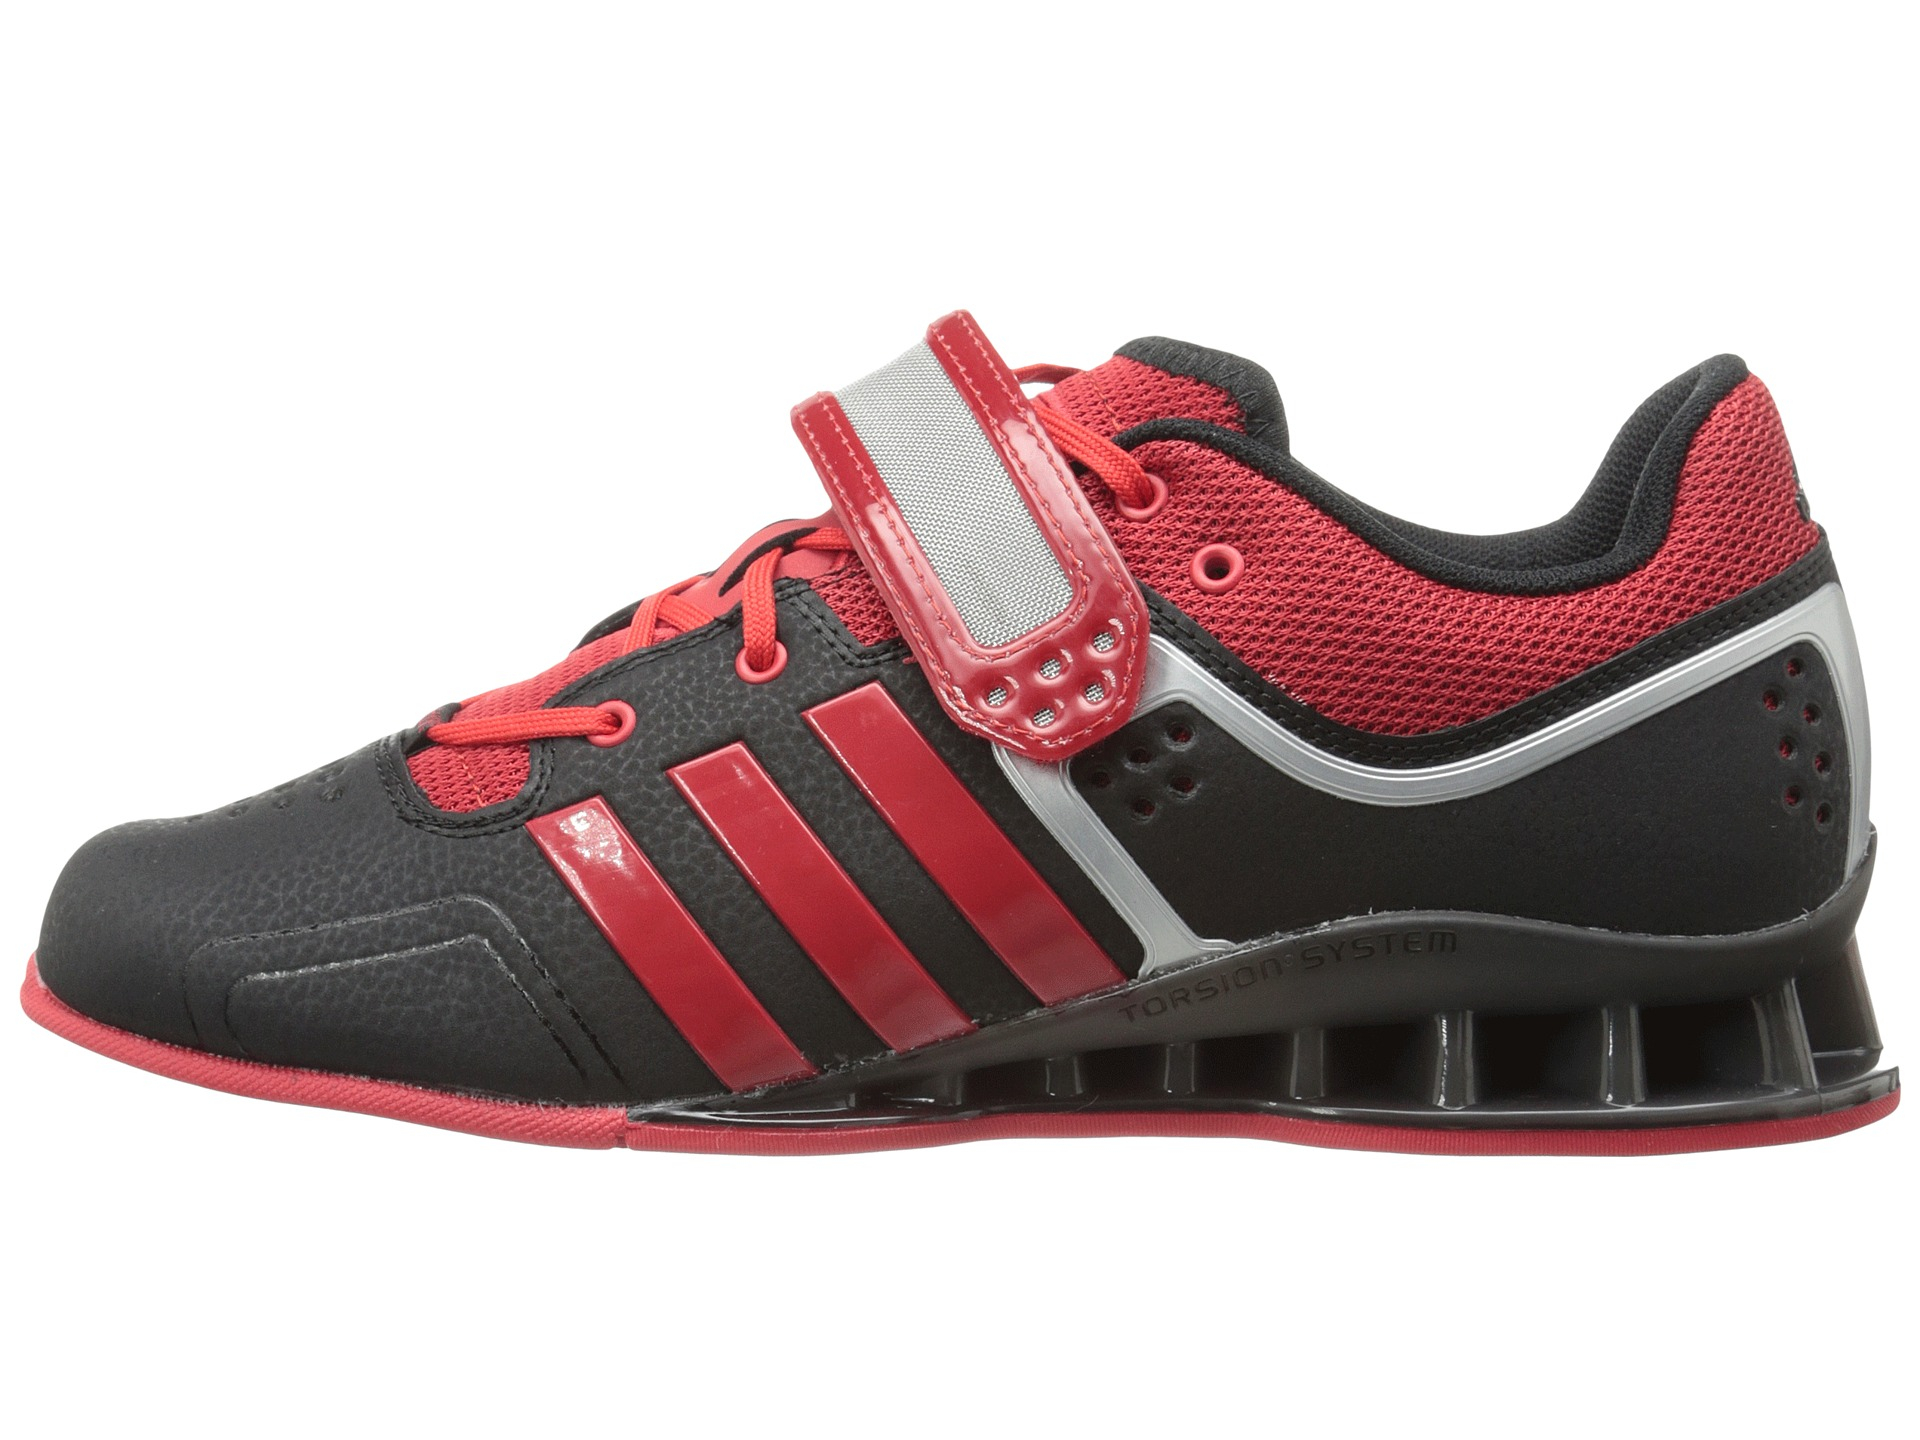 Adidas Men S Adipower Weightlift Weightlifting Shoes Black Red